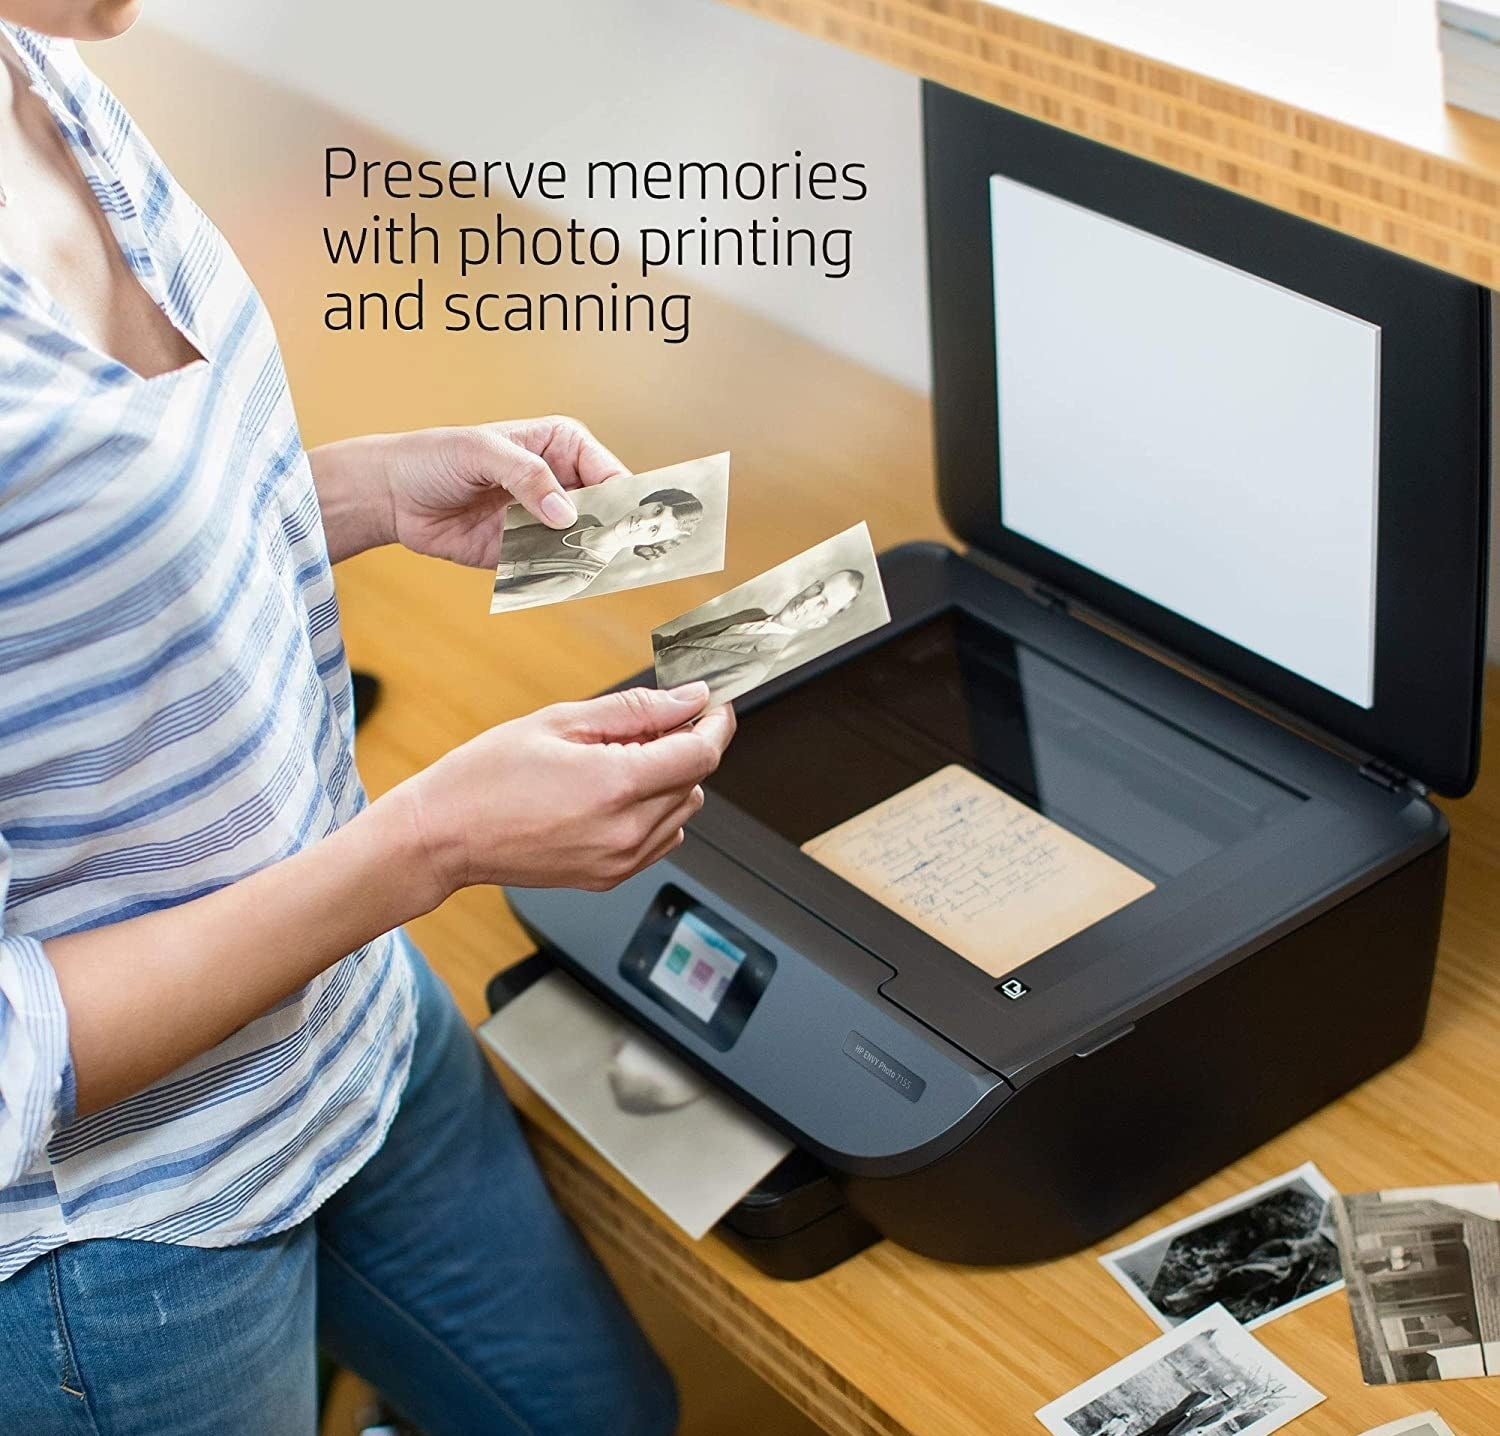 person scanning old family photos on the printer